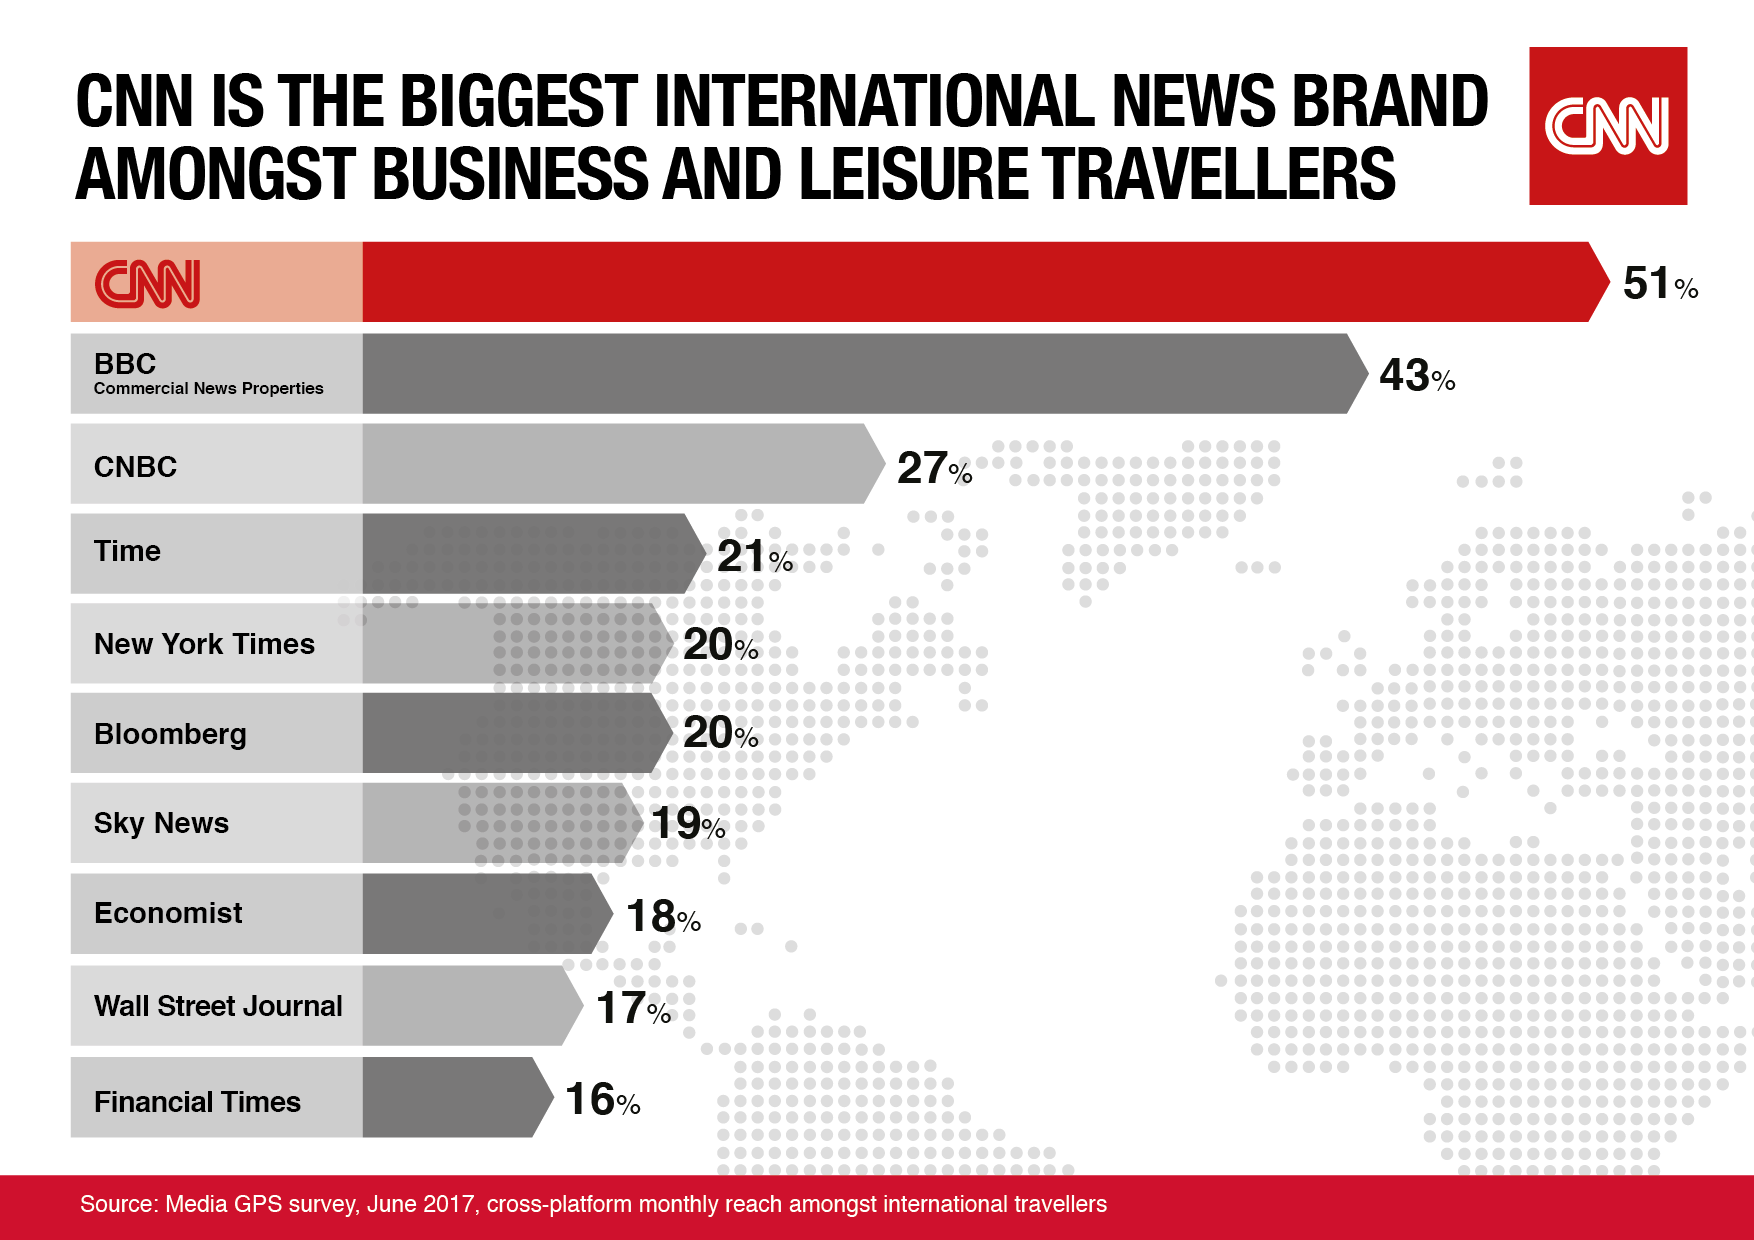 CNN named most popular news source for business and leisure